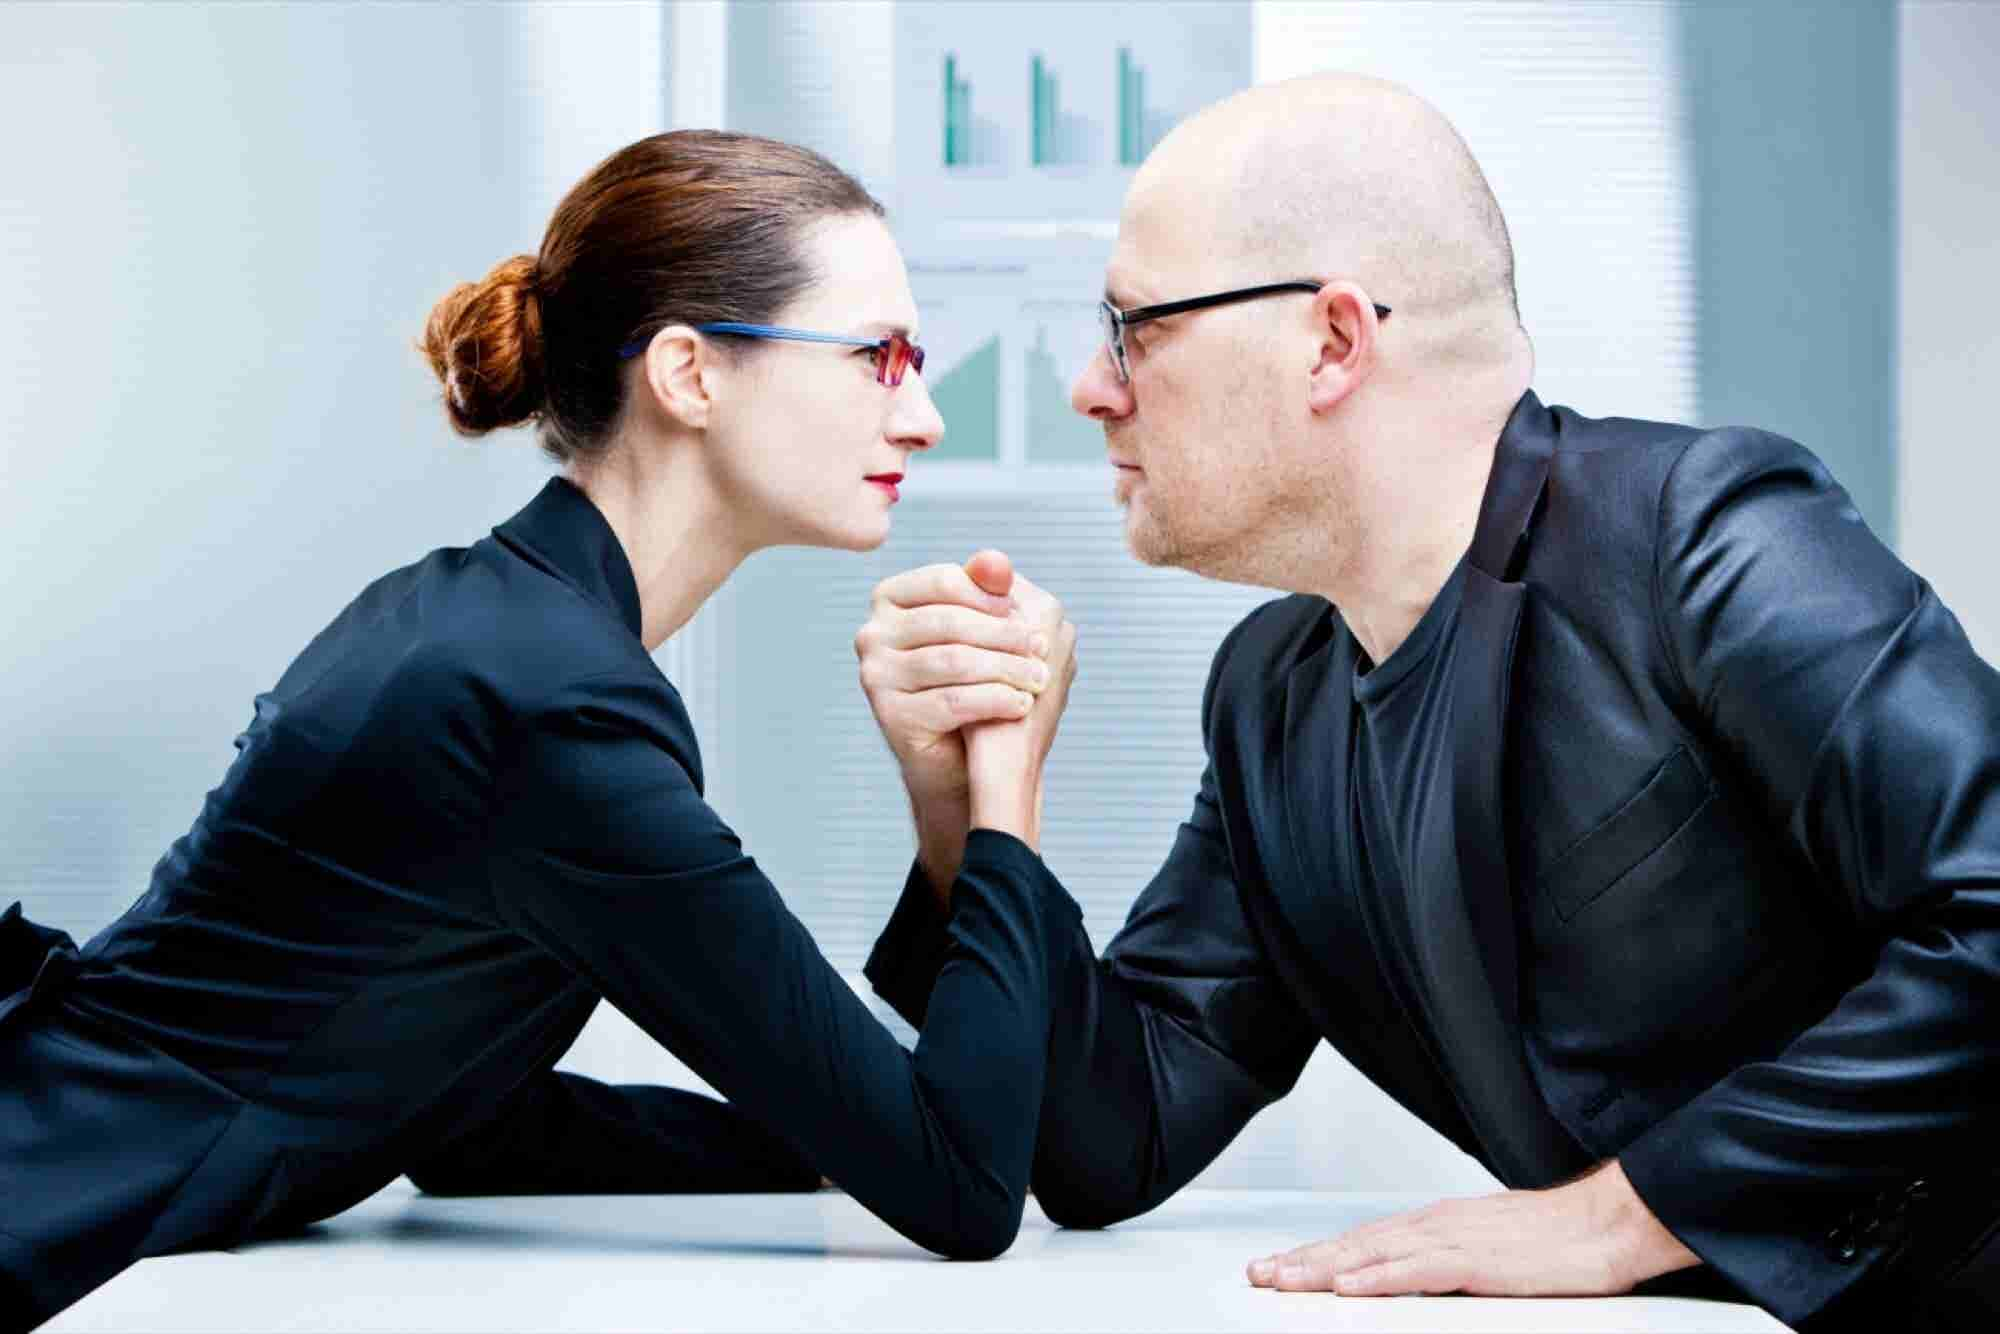 How Should Entrepreneurs Deal with In-house Conflicts